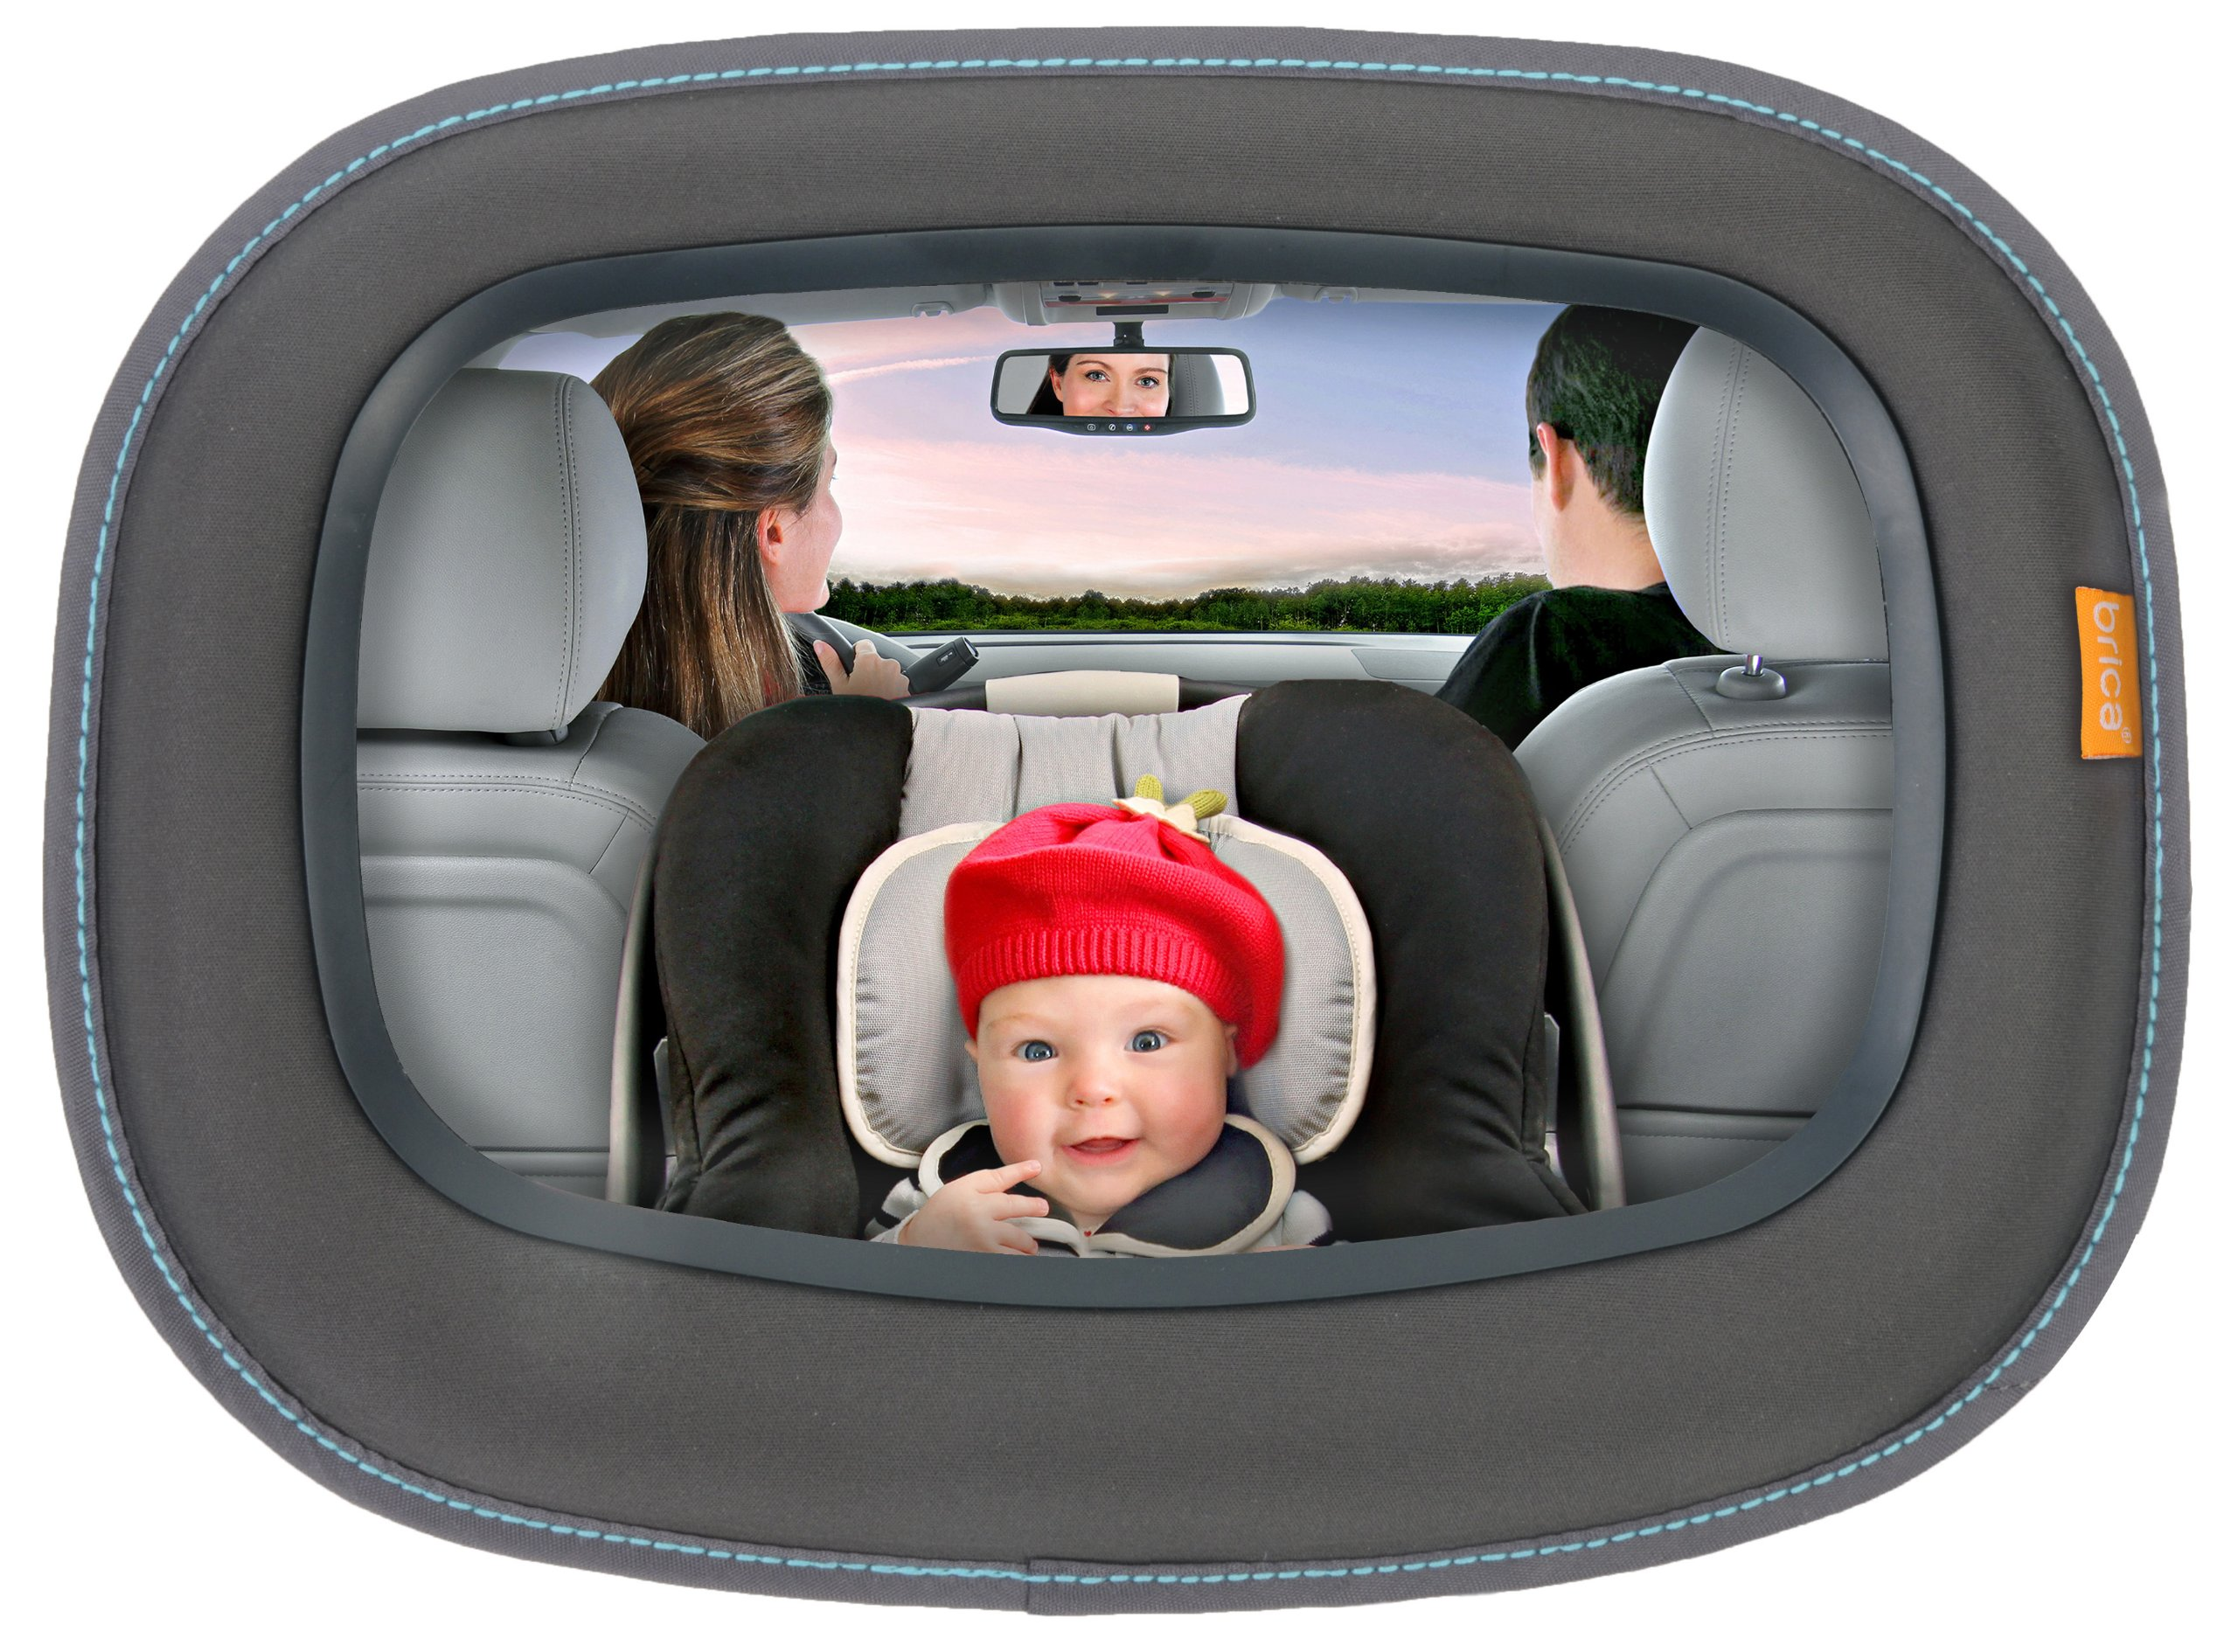 Brica Vivid Reflection Baby In-Sight Car Mirror, Crash Tested and Shatter Resistant by Brica (Image #2)